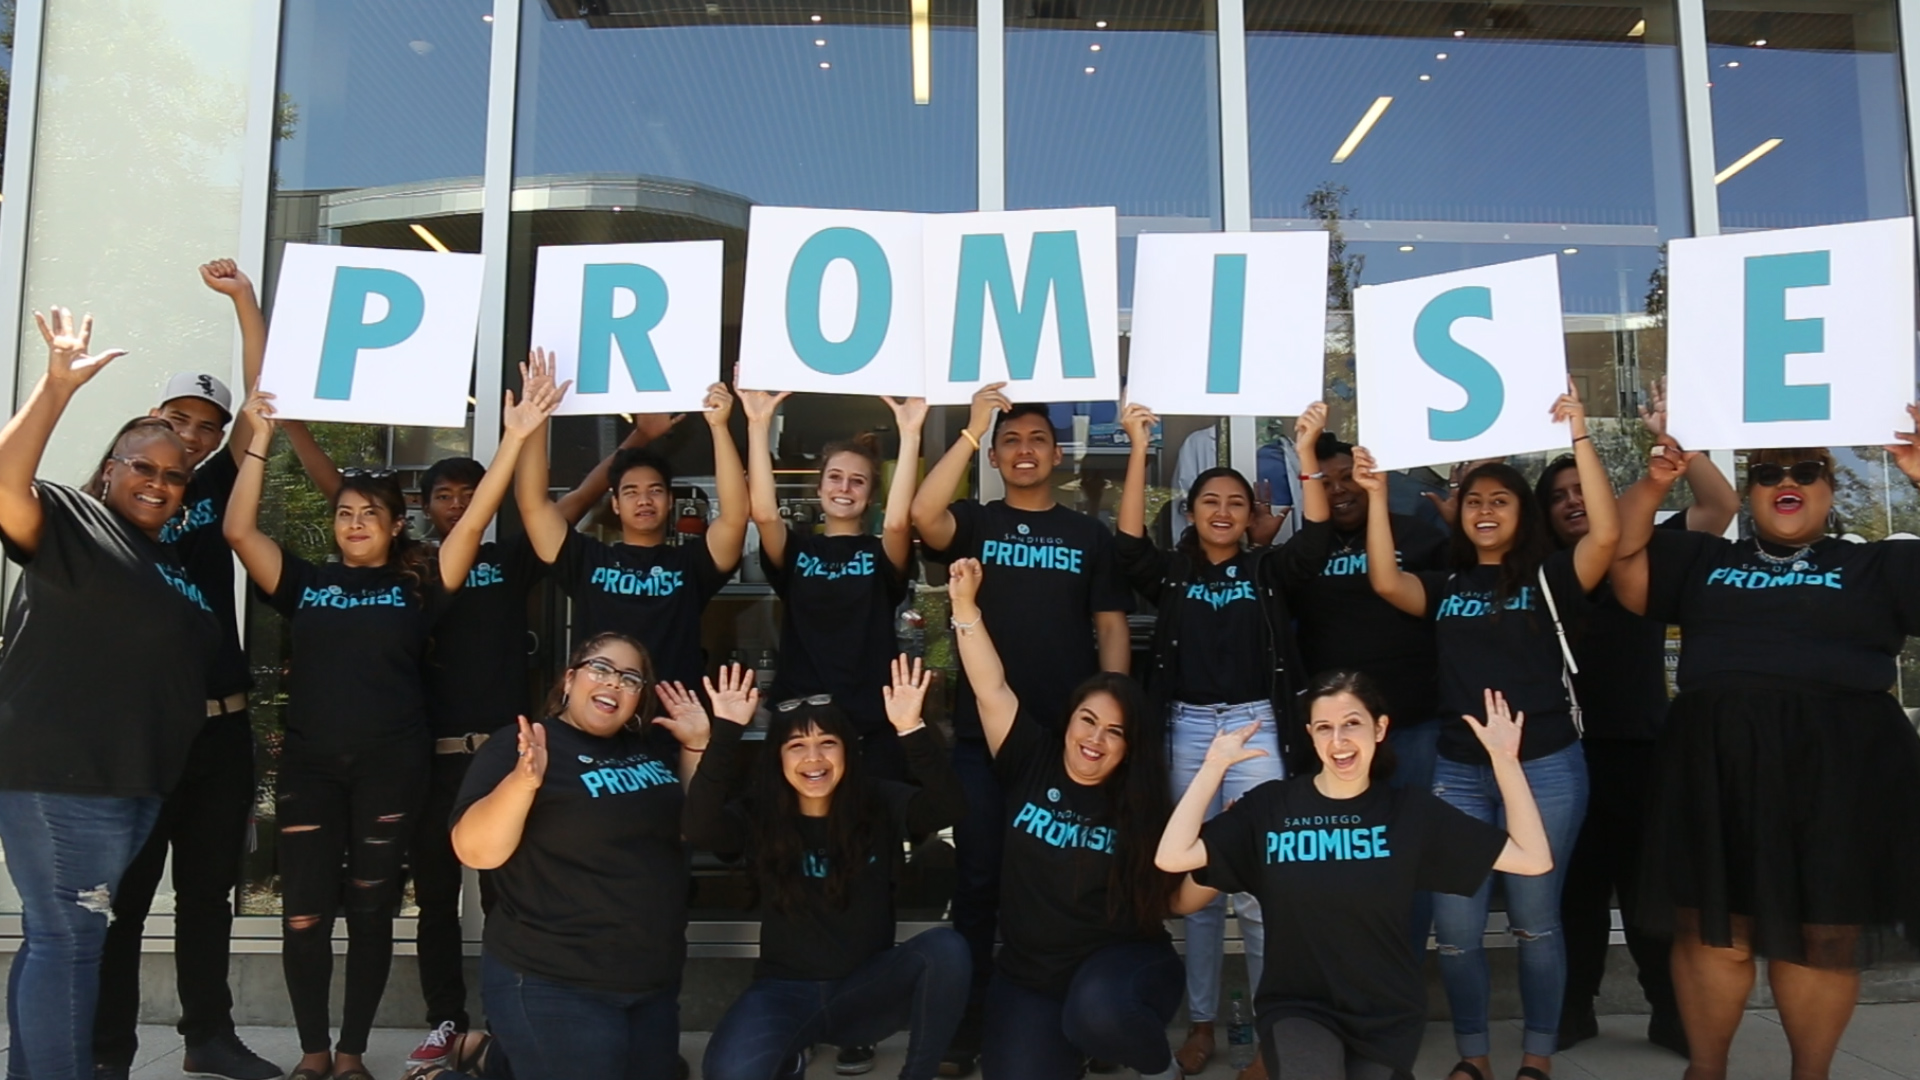 Students hold up letters spelling Promise